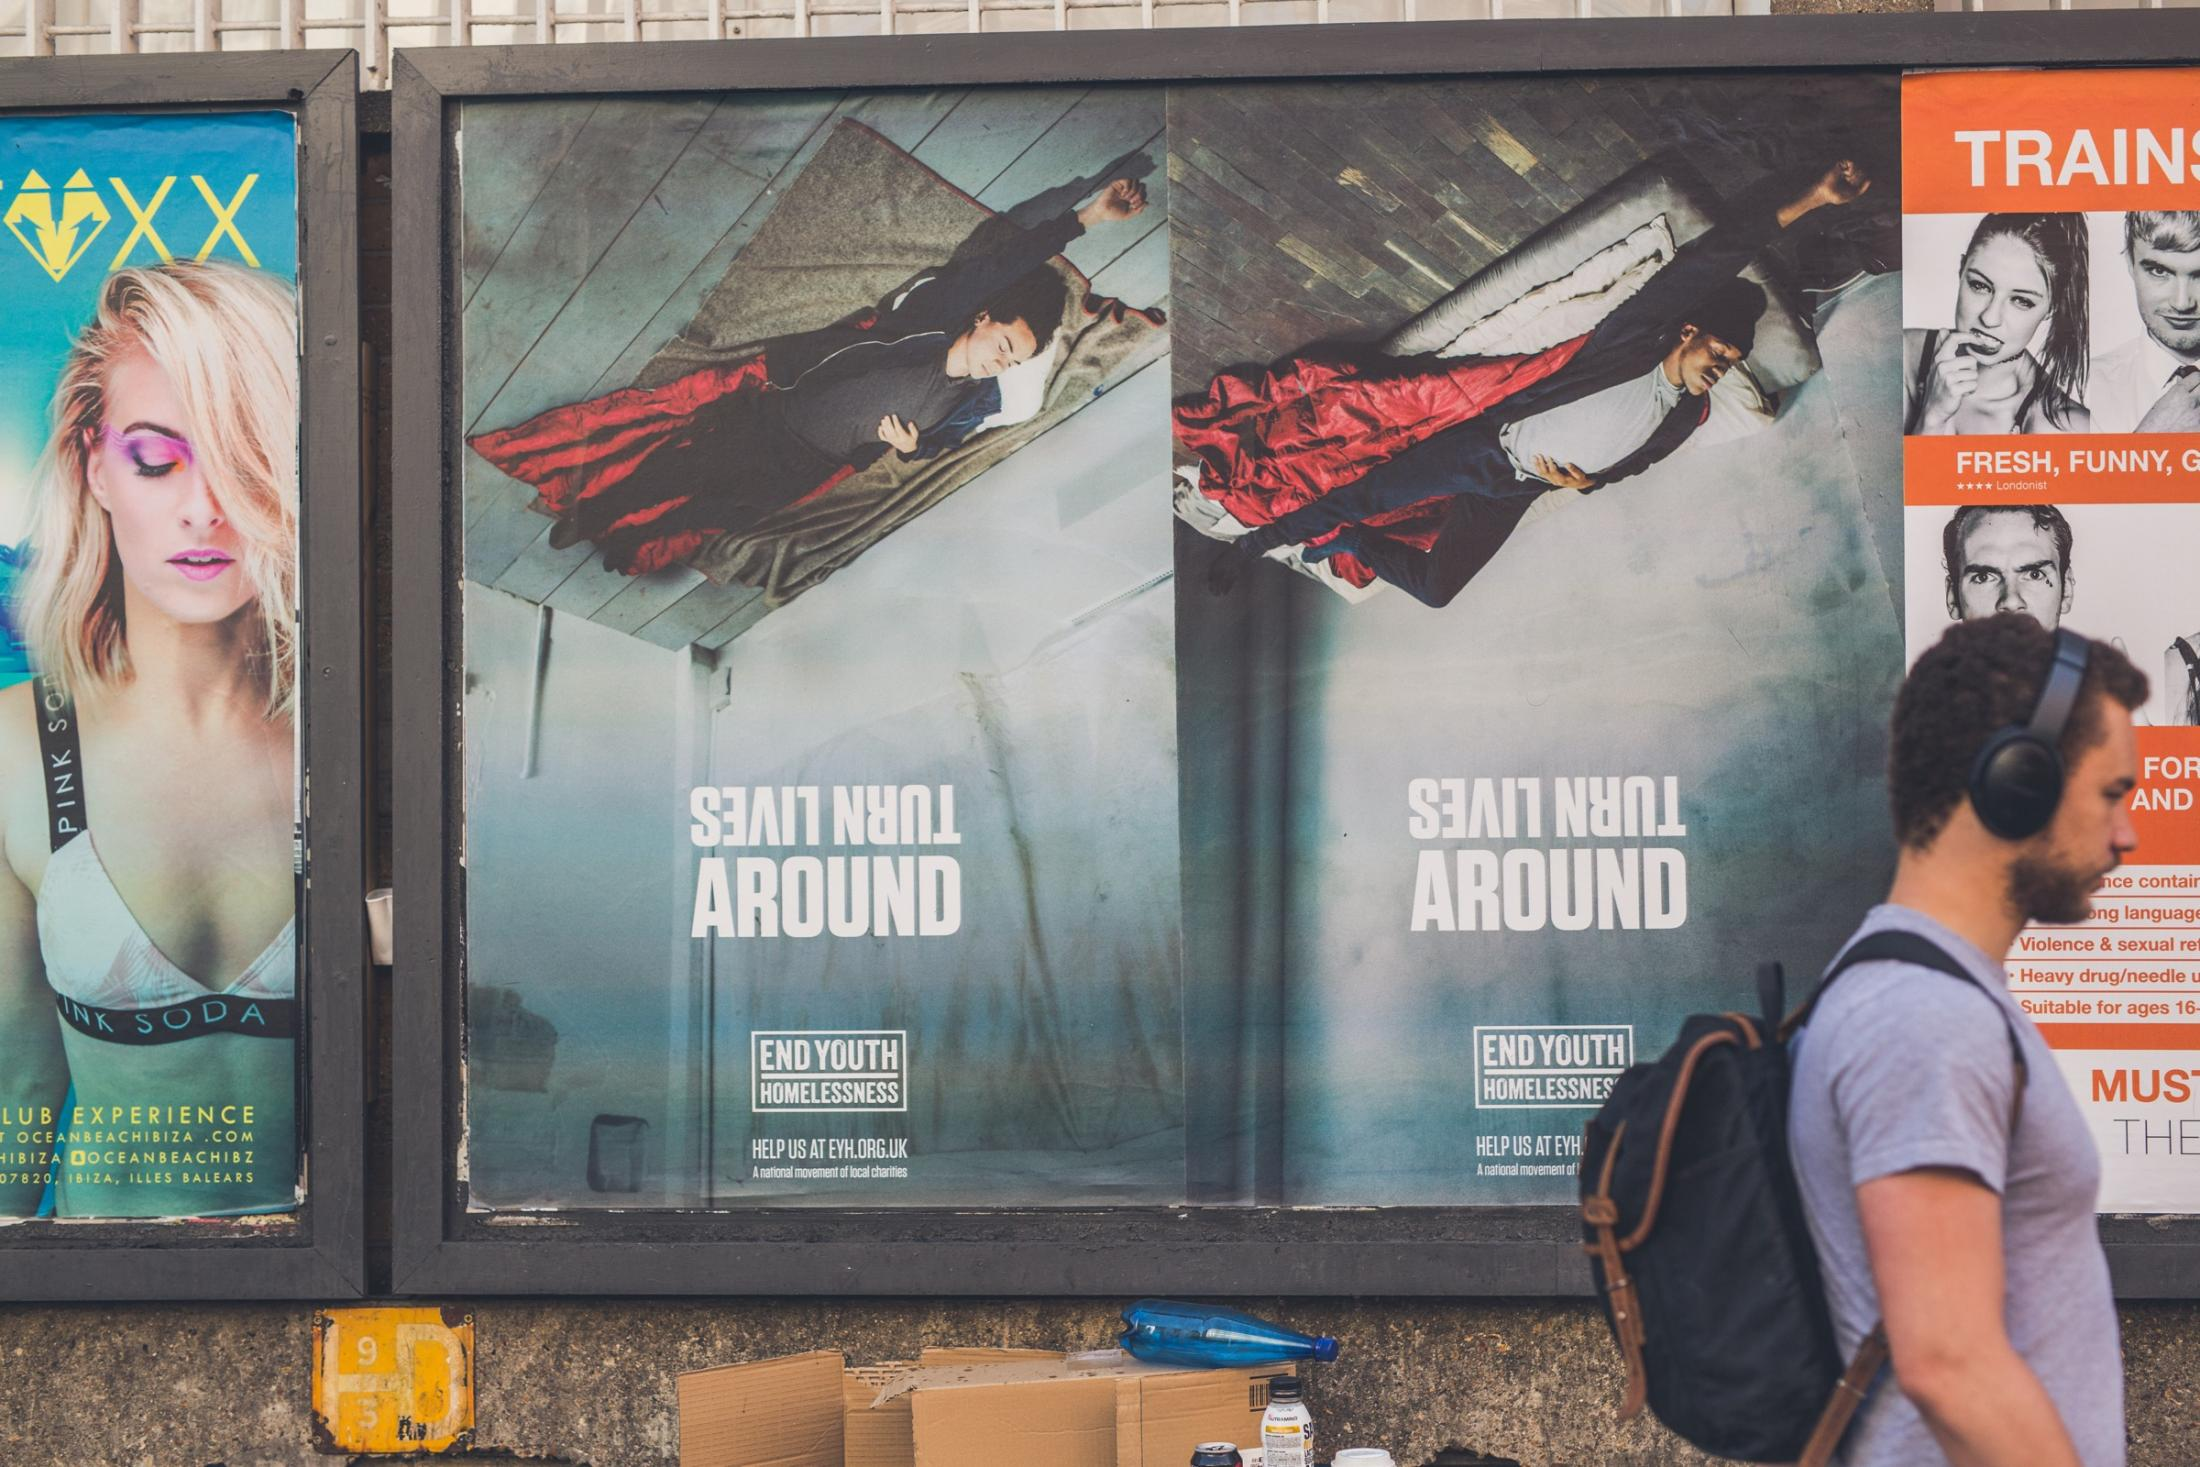 End Youth Homelessness Outdoor Ad - Turn Lives Around, 1